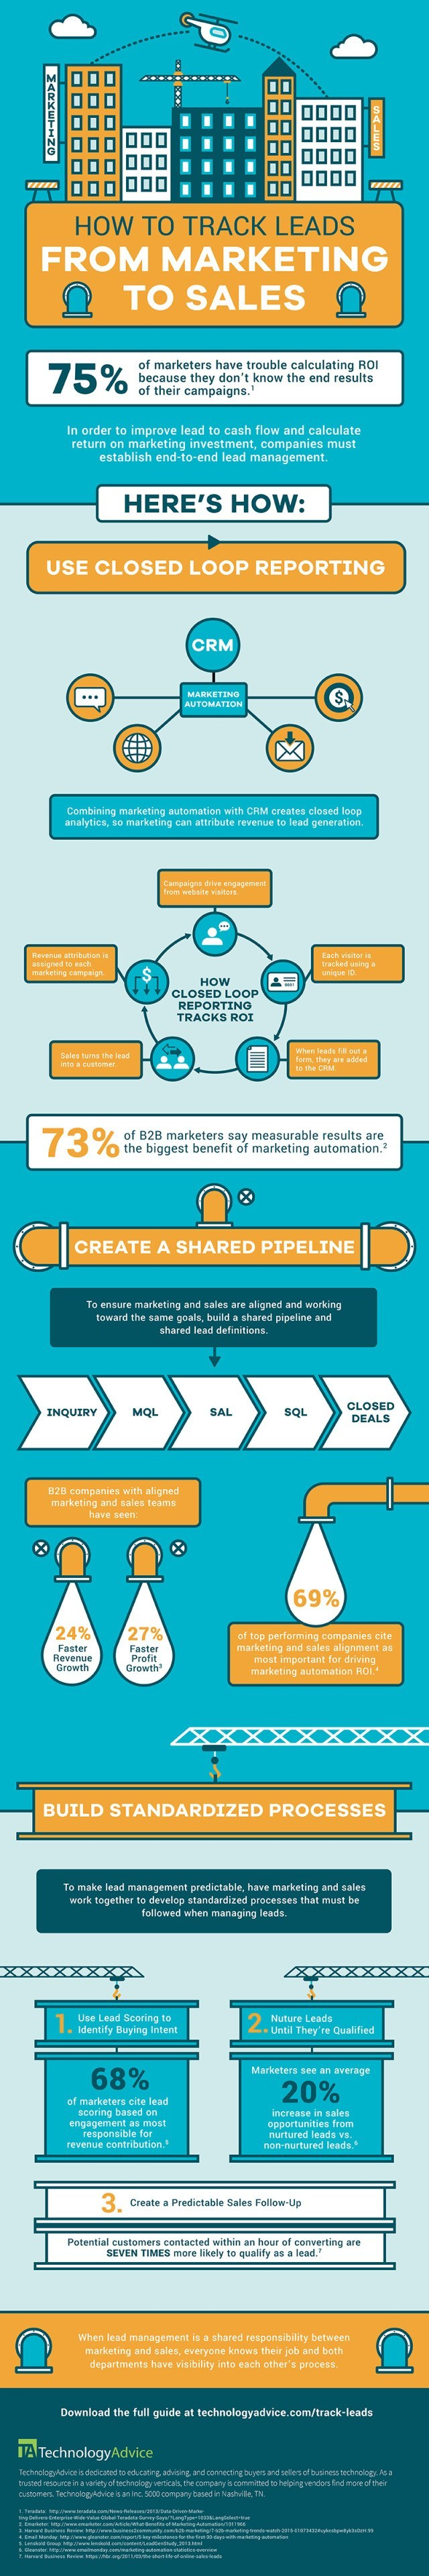 tracking-leads-from-marketing-to-sales-infographic-640x3840